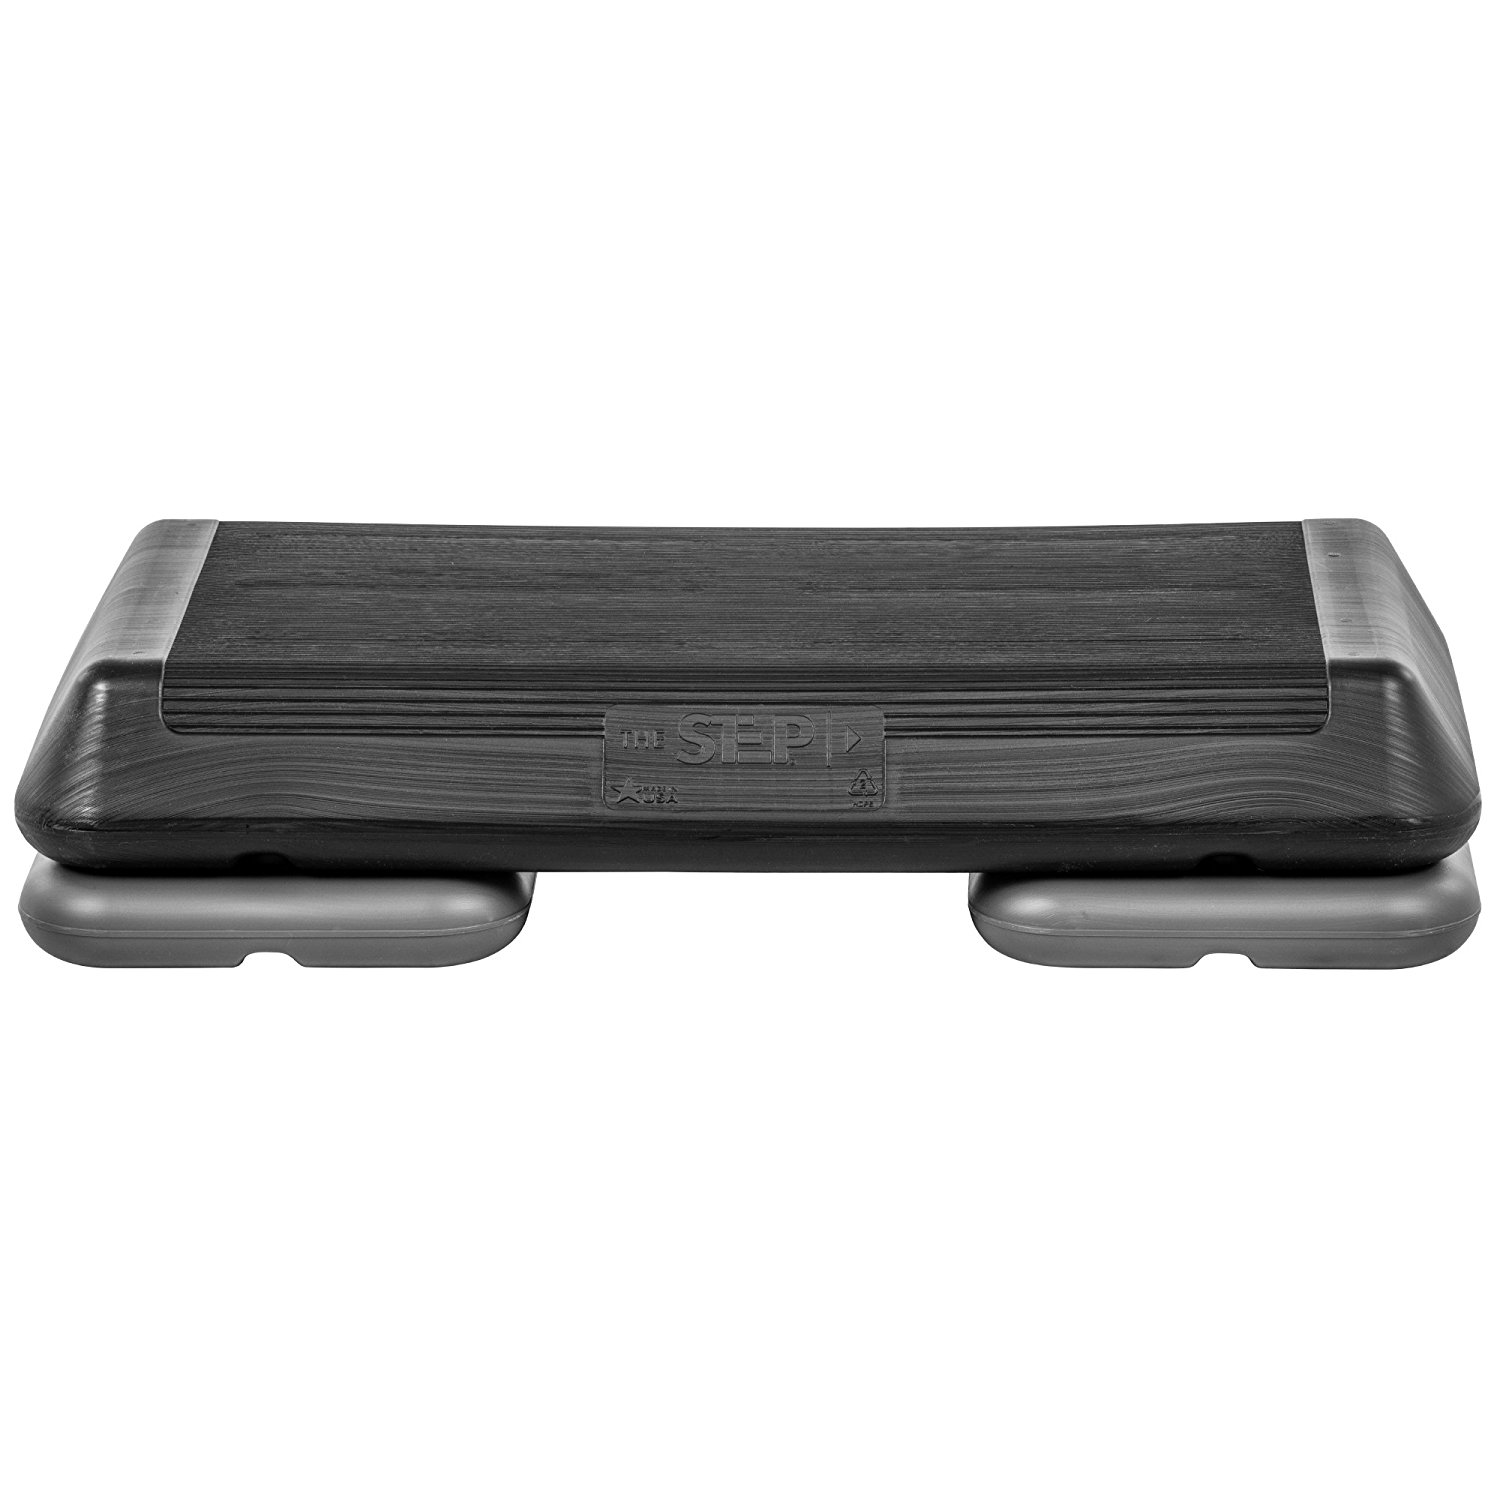 29 x 14.5 x 6.25 91162 Platform and Two Risers The Step FreeStyle Circuit Step